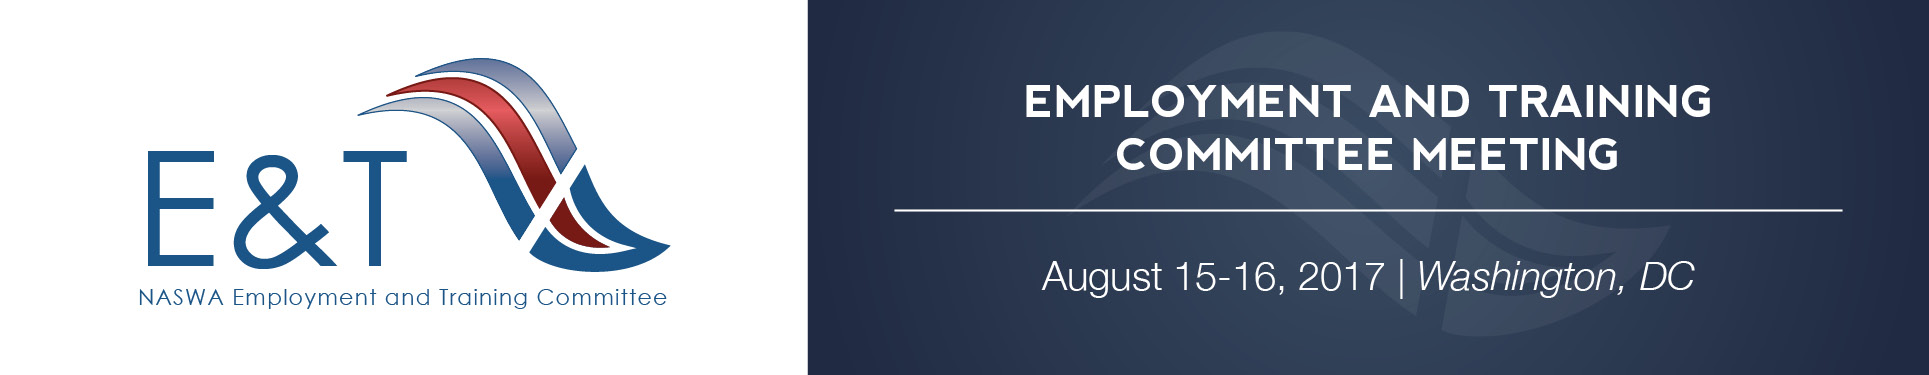 Employment &Training Committee Meeting (Aug 2017)